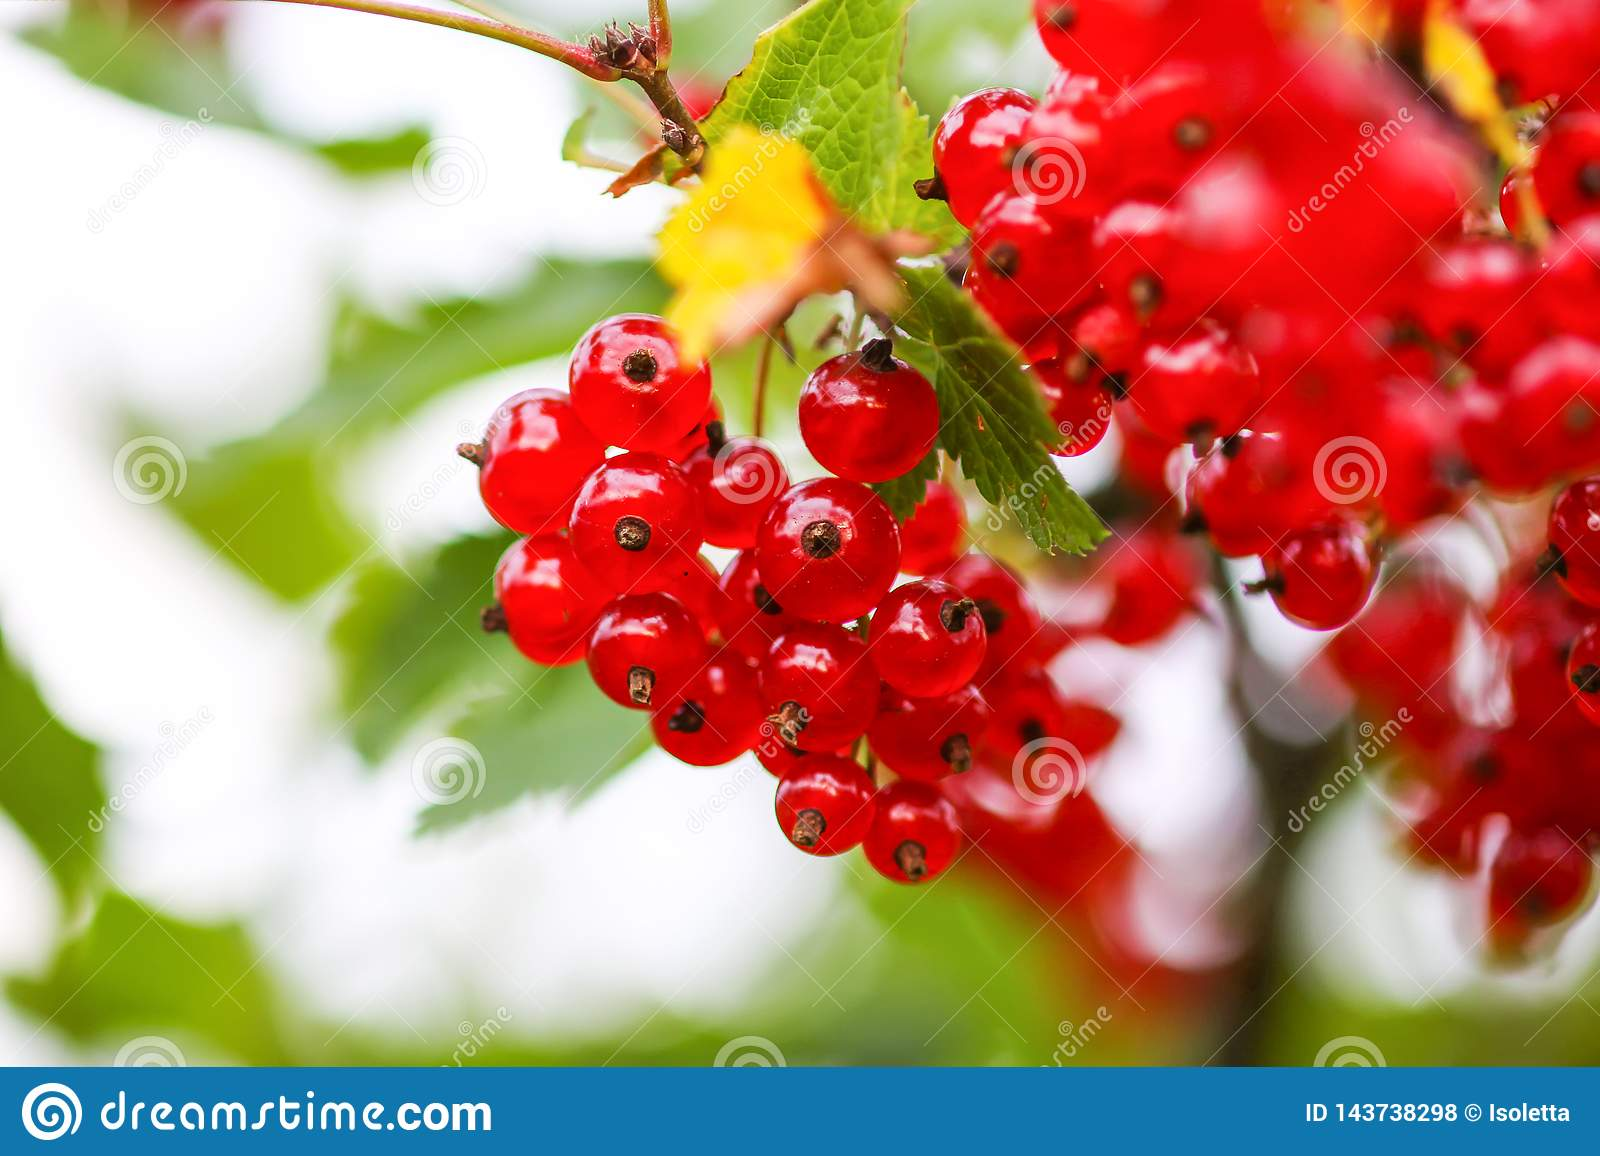 Ripe red currant in a garden. Ribes rubrum plant with ripe red berries